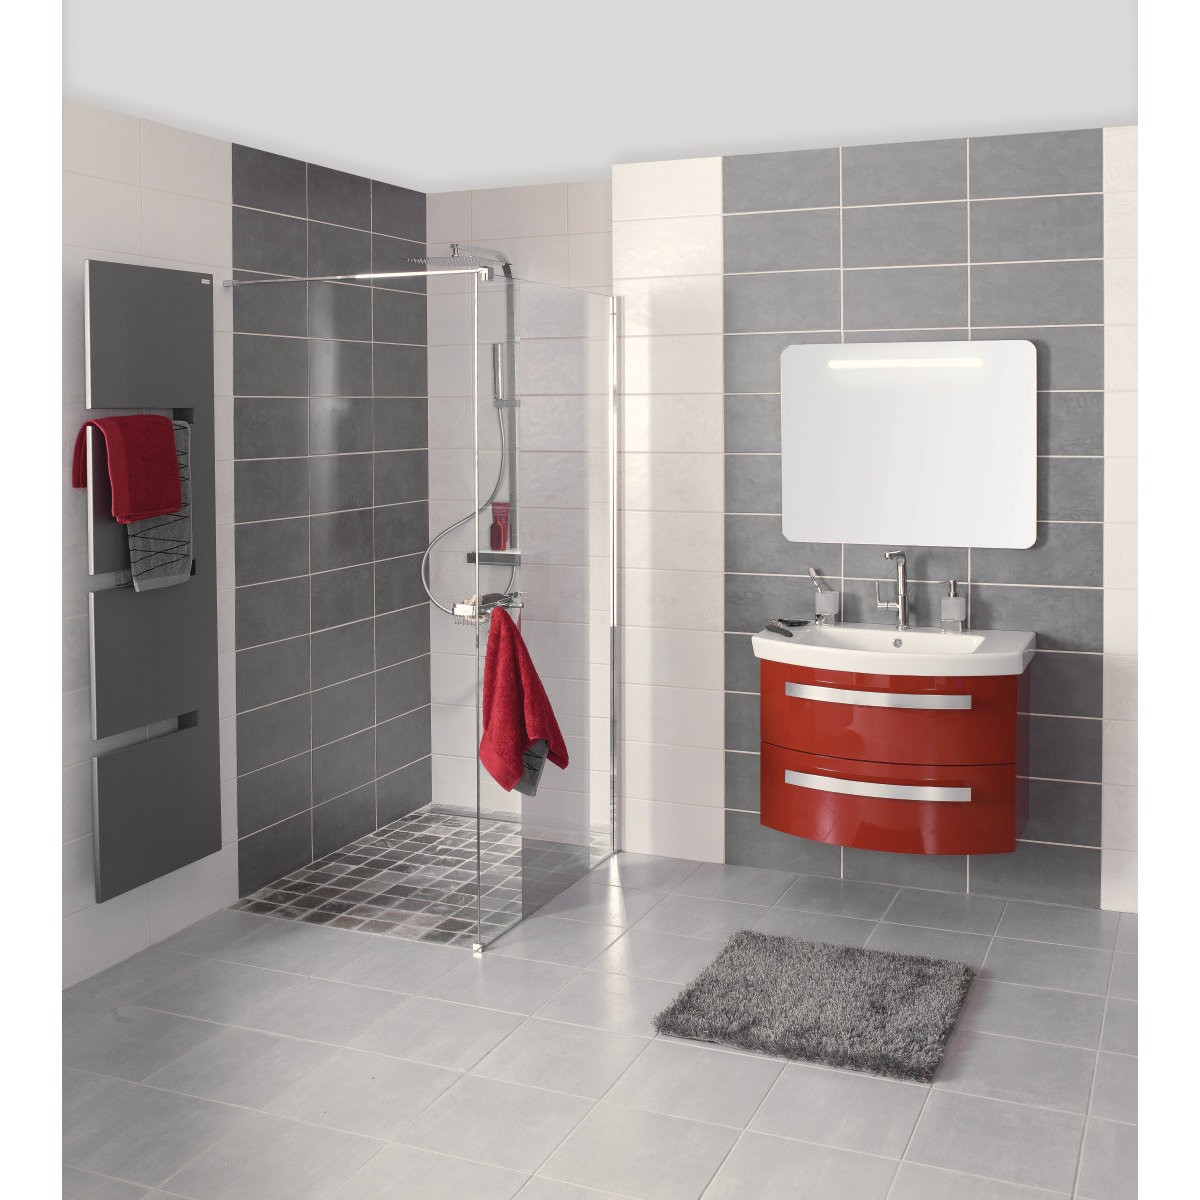 Carrelage salle de bain point p salle de bain id es de for Carrelage bain